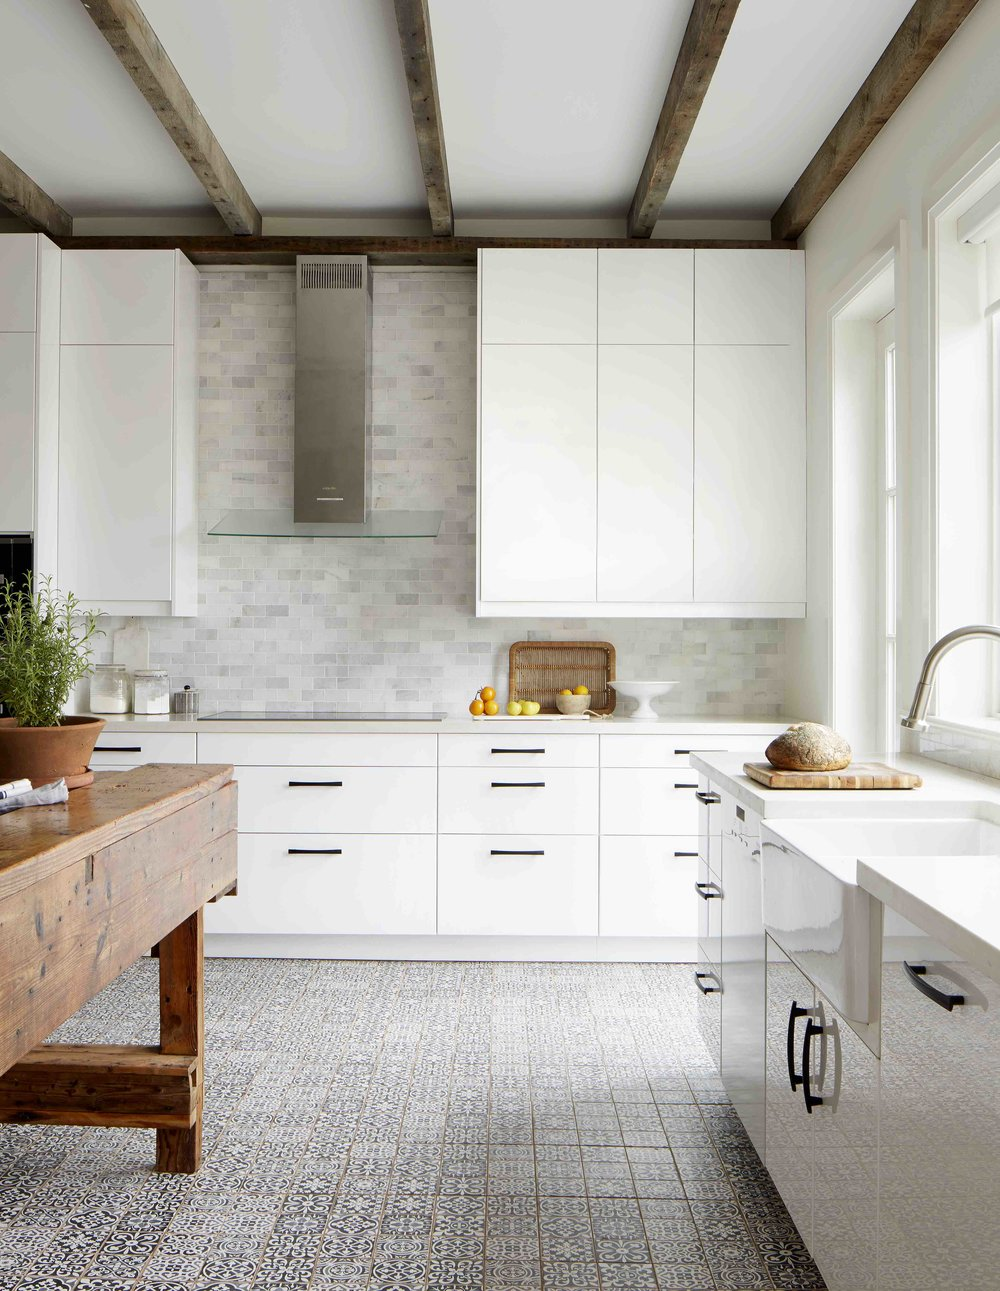 16. MiltonFarmHouse_KitchenCounter_Vertical_F1.jpg